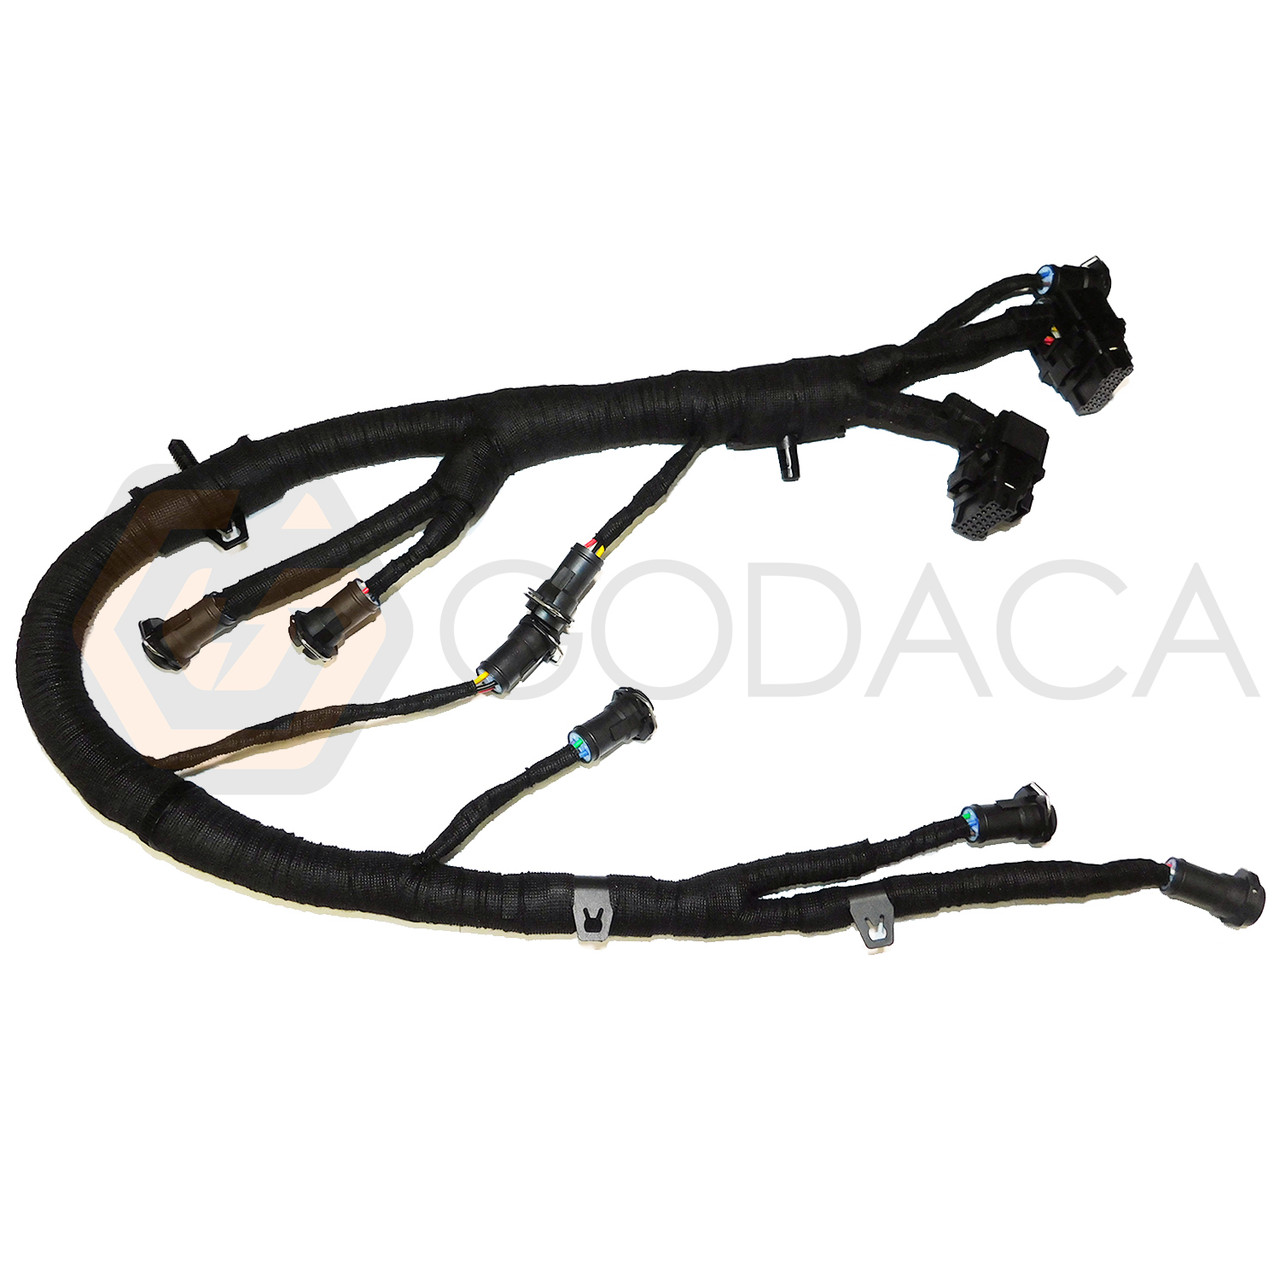 hight resolution of 1x wiring harness for fuel injector ford diesel powerstroke 6 0 5c3z 9d930 a godaca llc